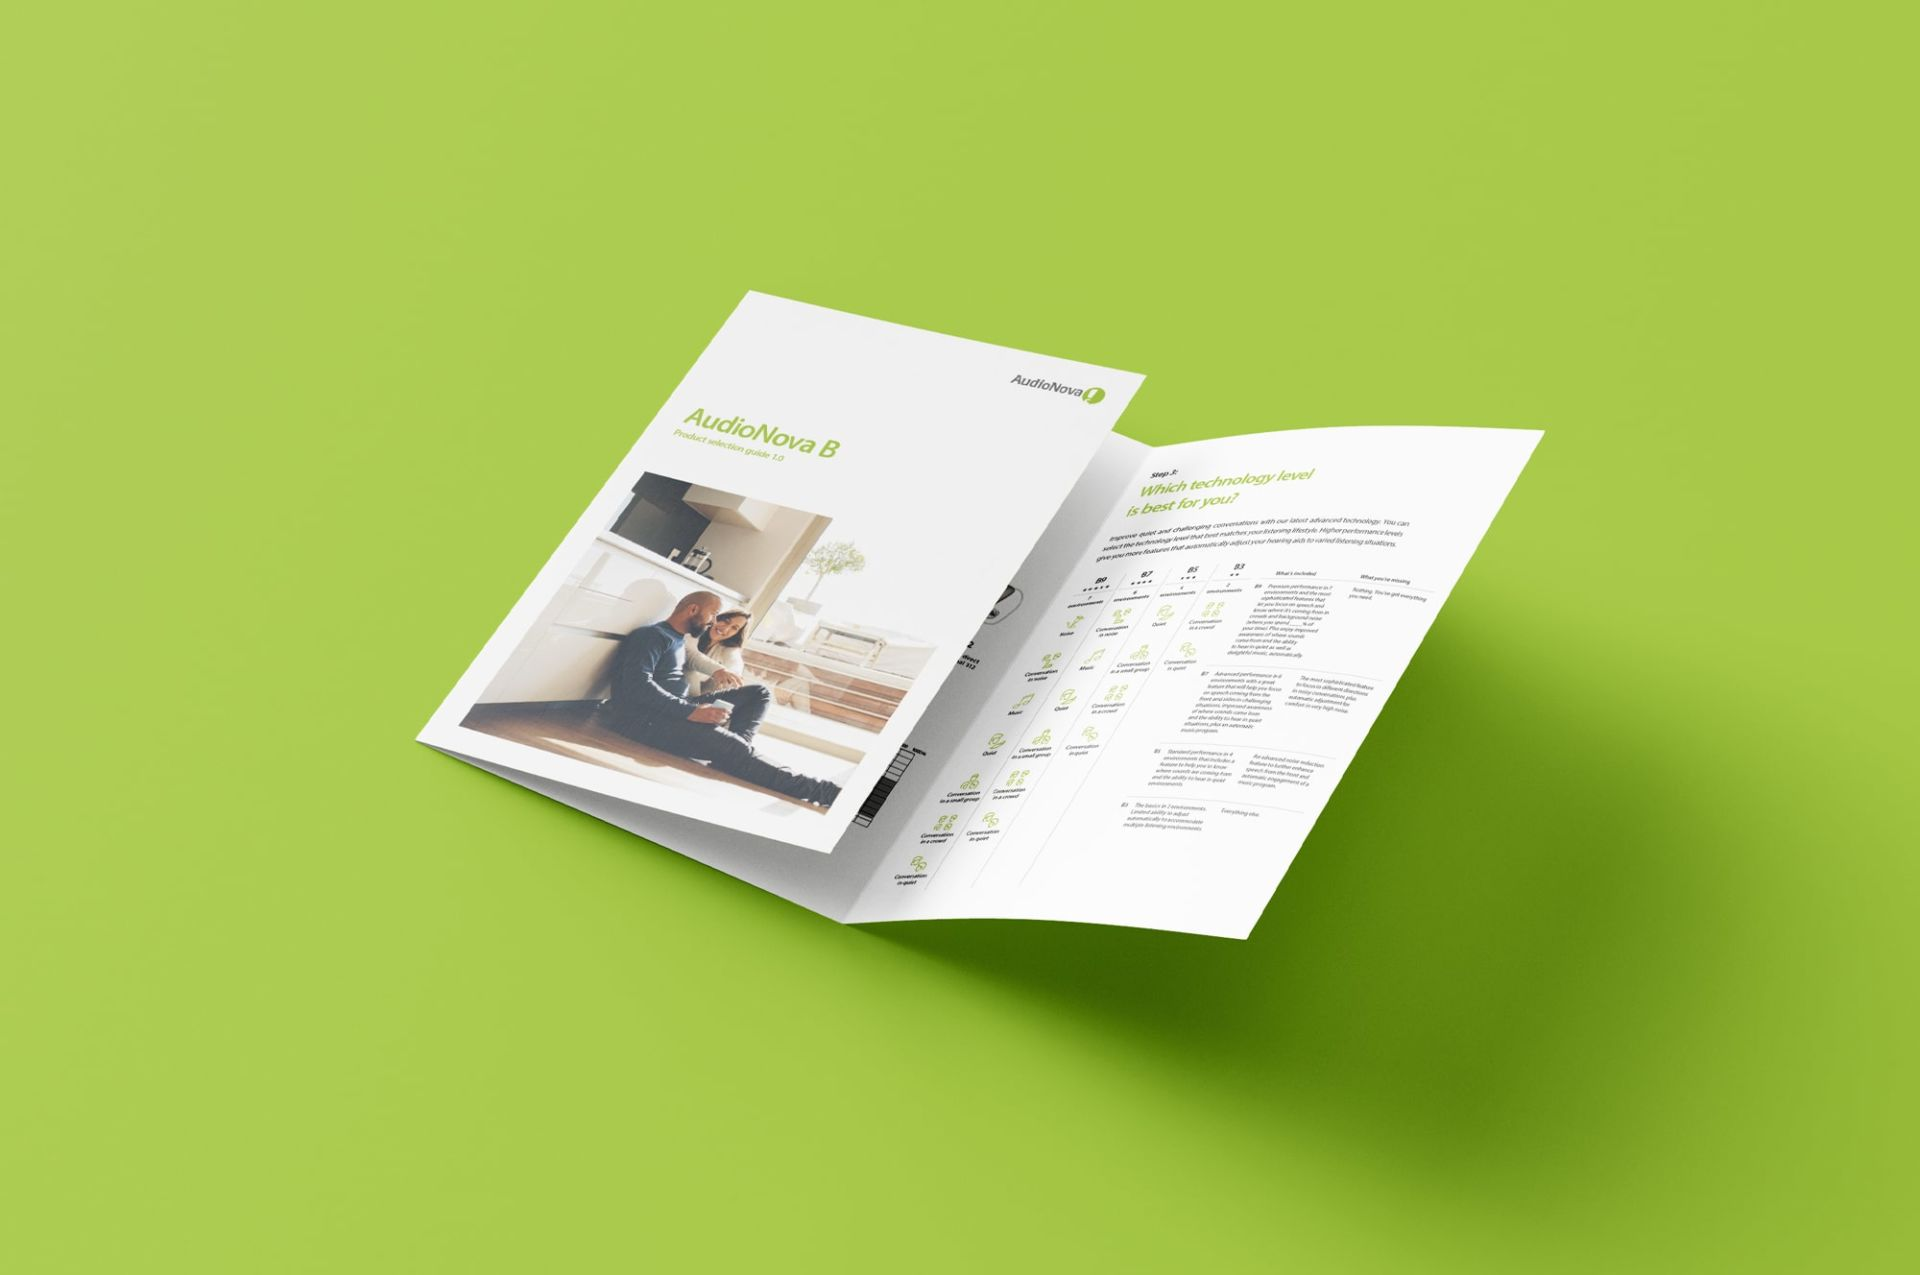 Audiological-Care_A4_Book_Style-Guide_Mockup_009